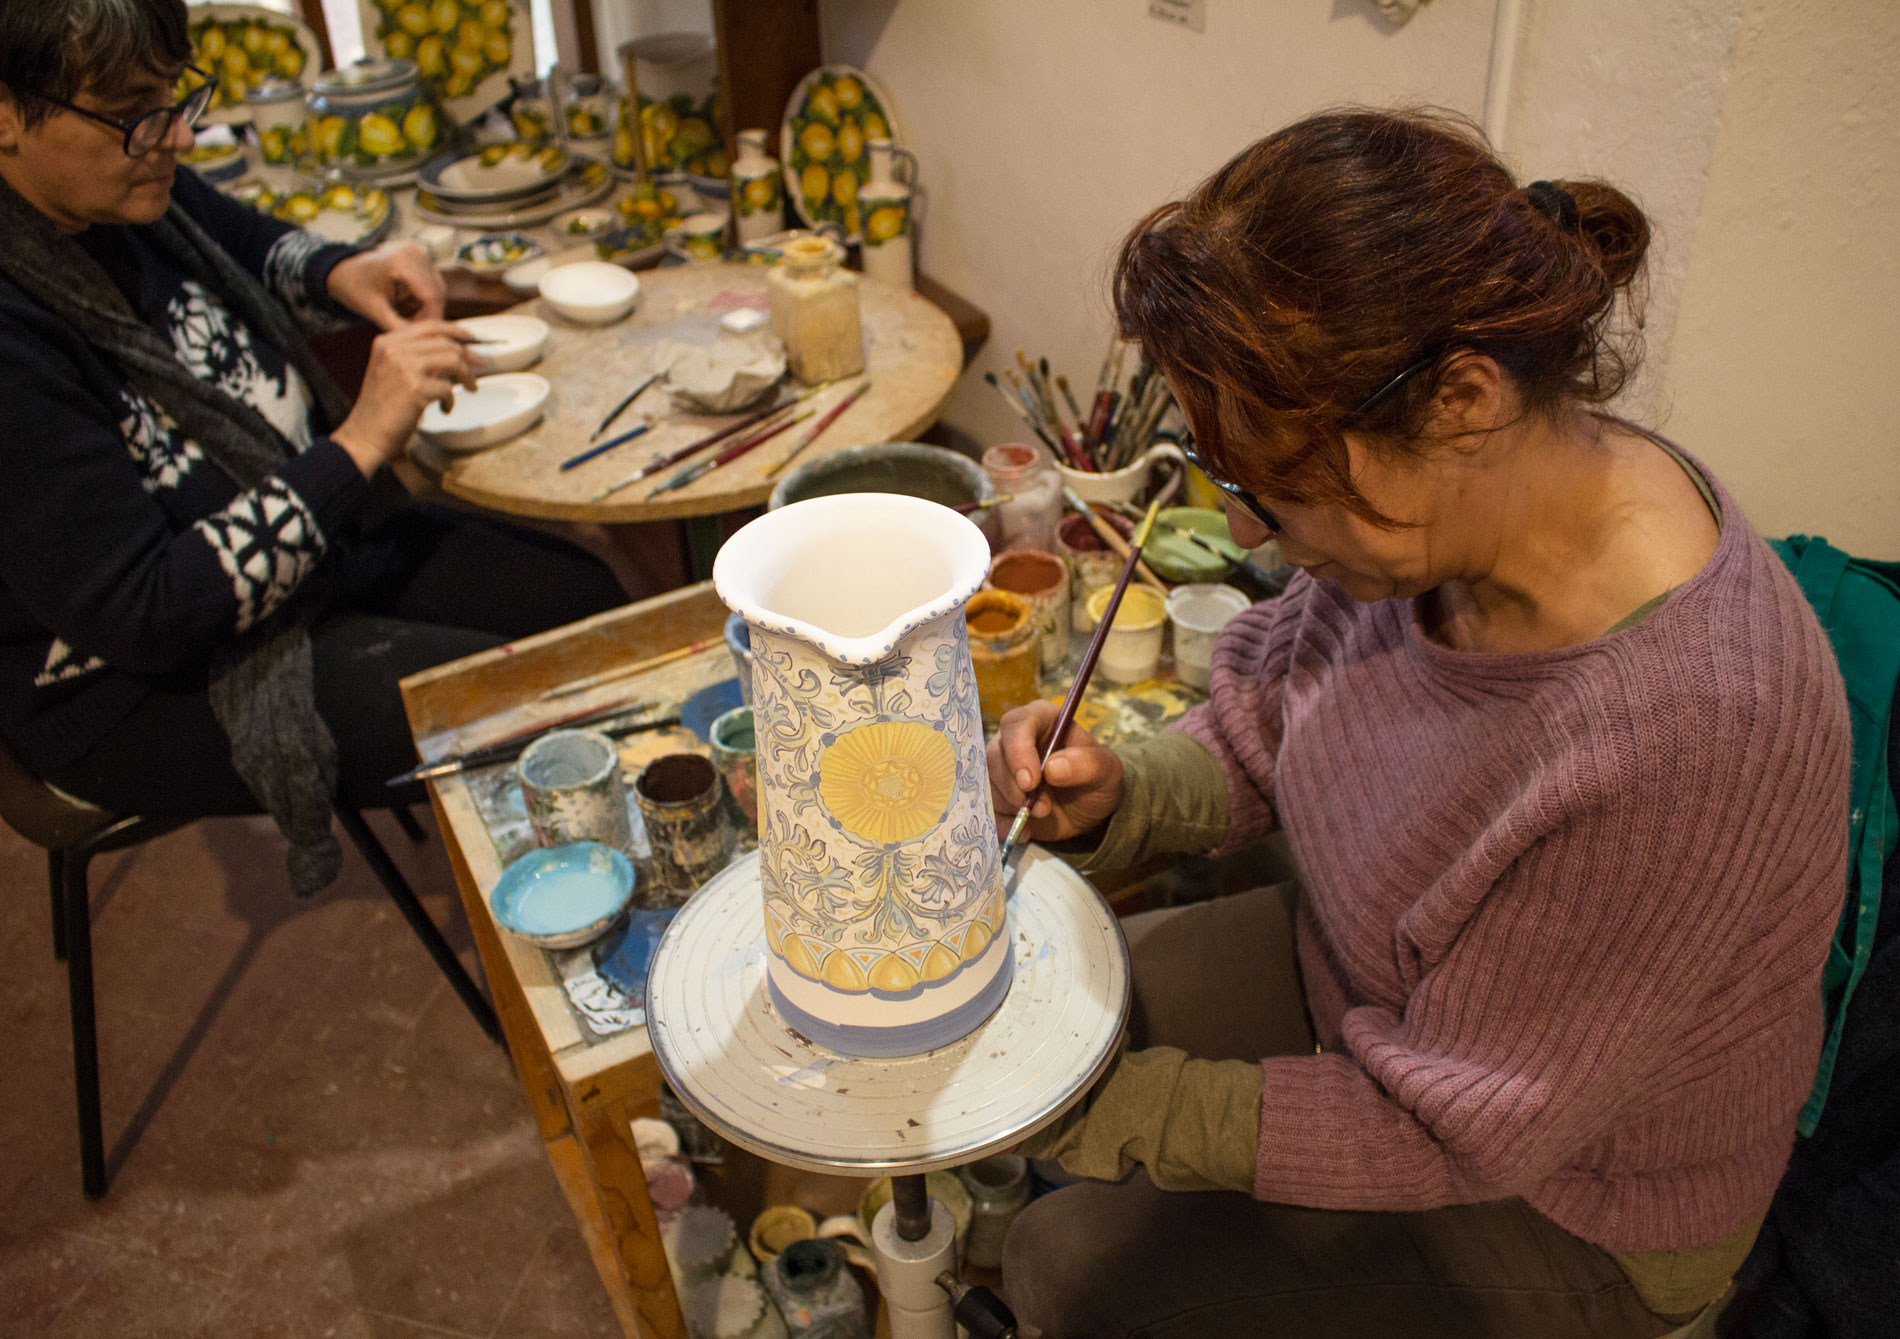 Demonstration on pottery with majolica technique - Certaldo - Tuscany